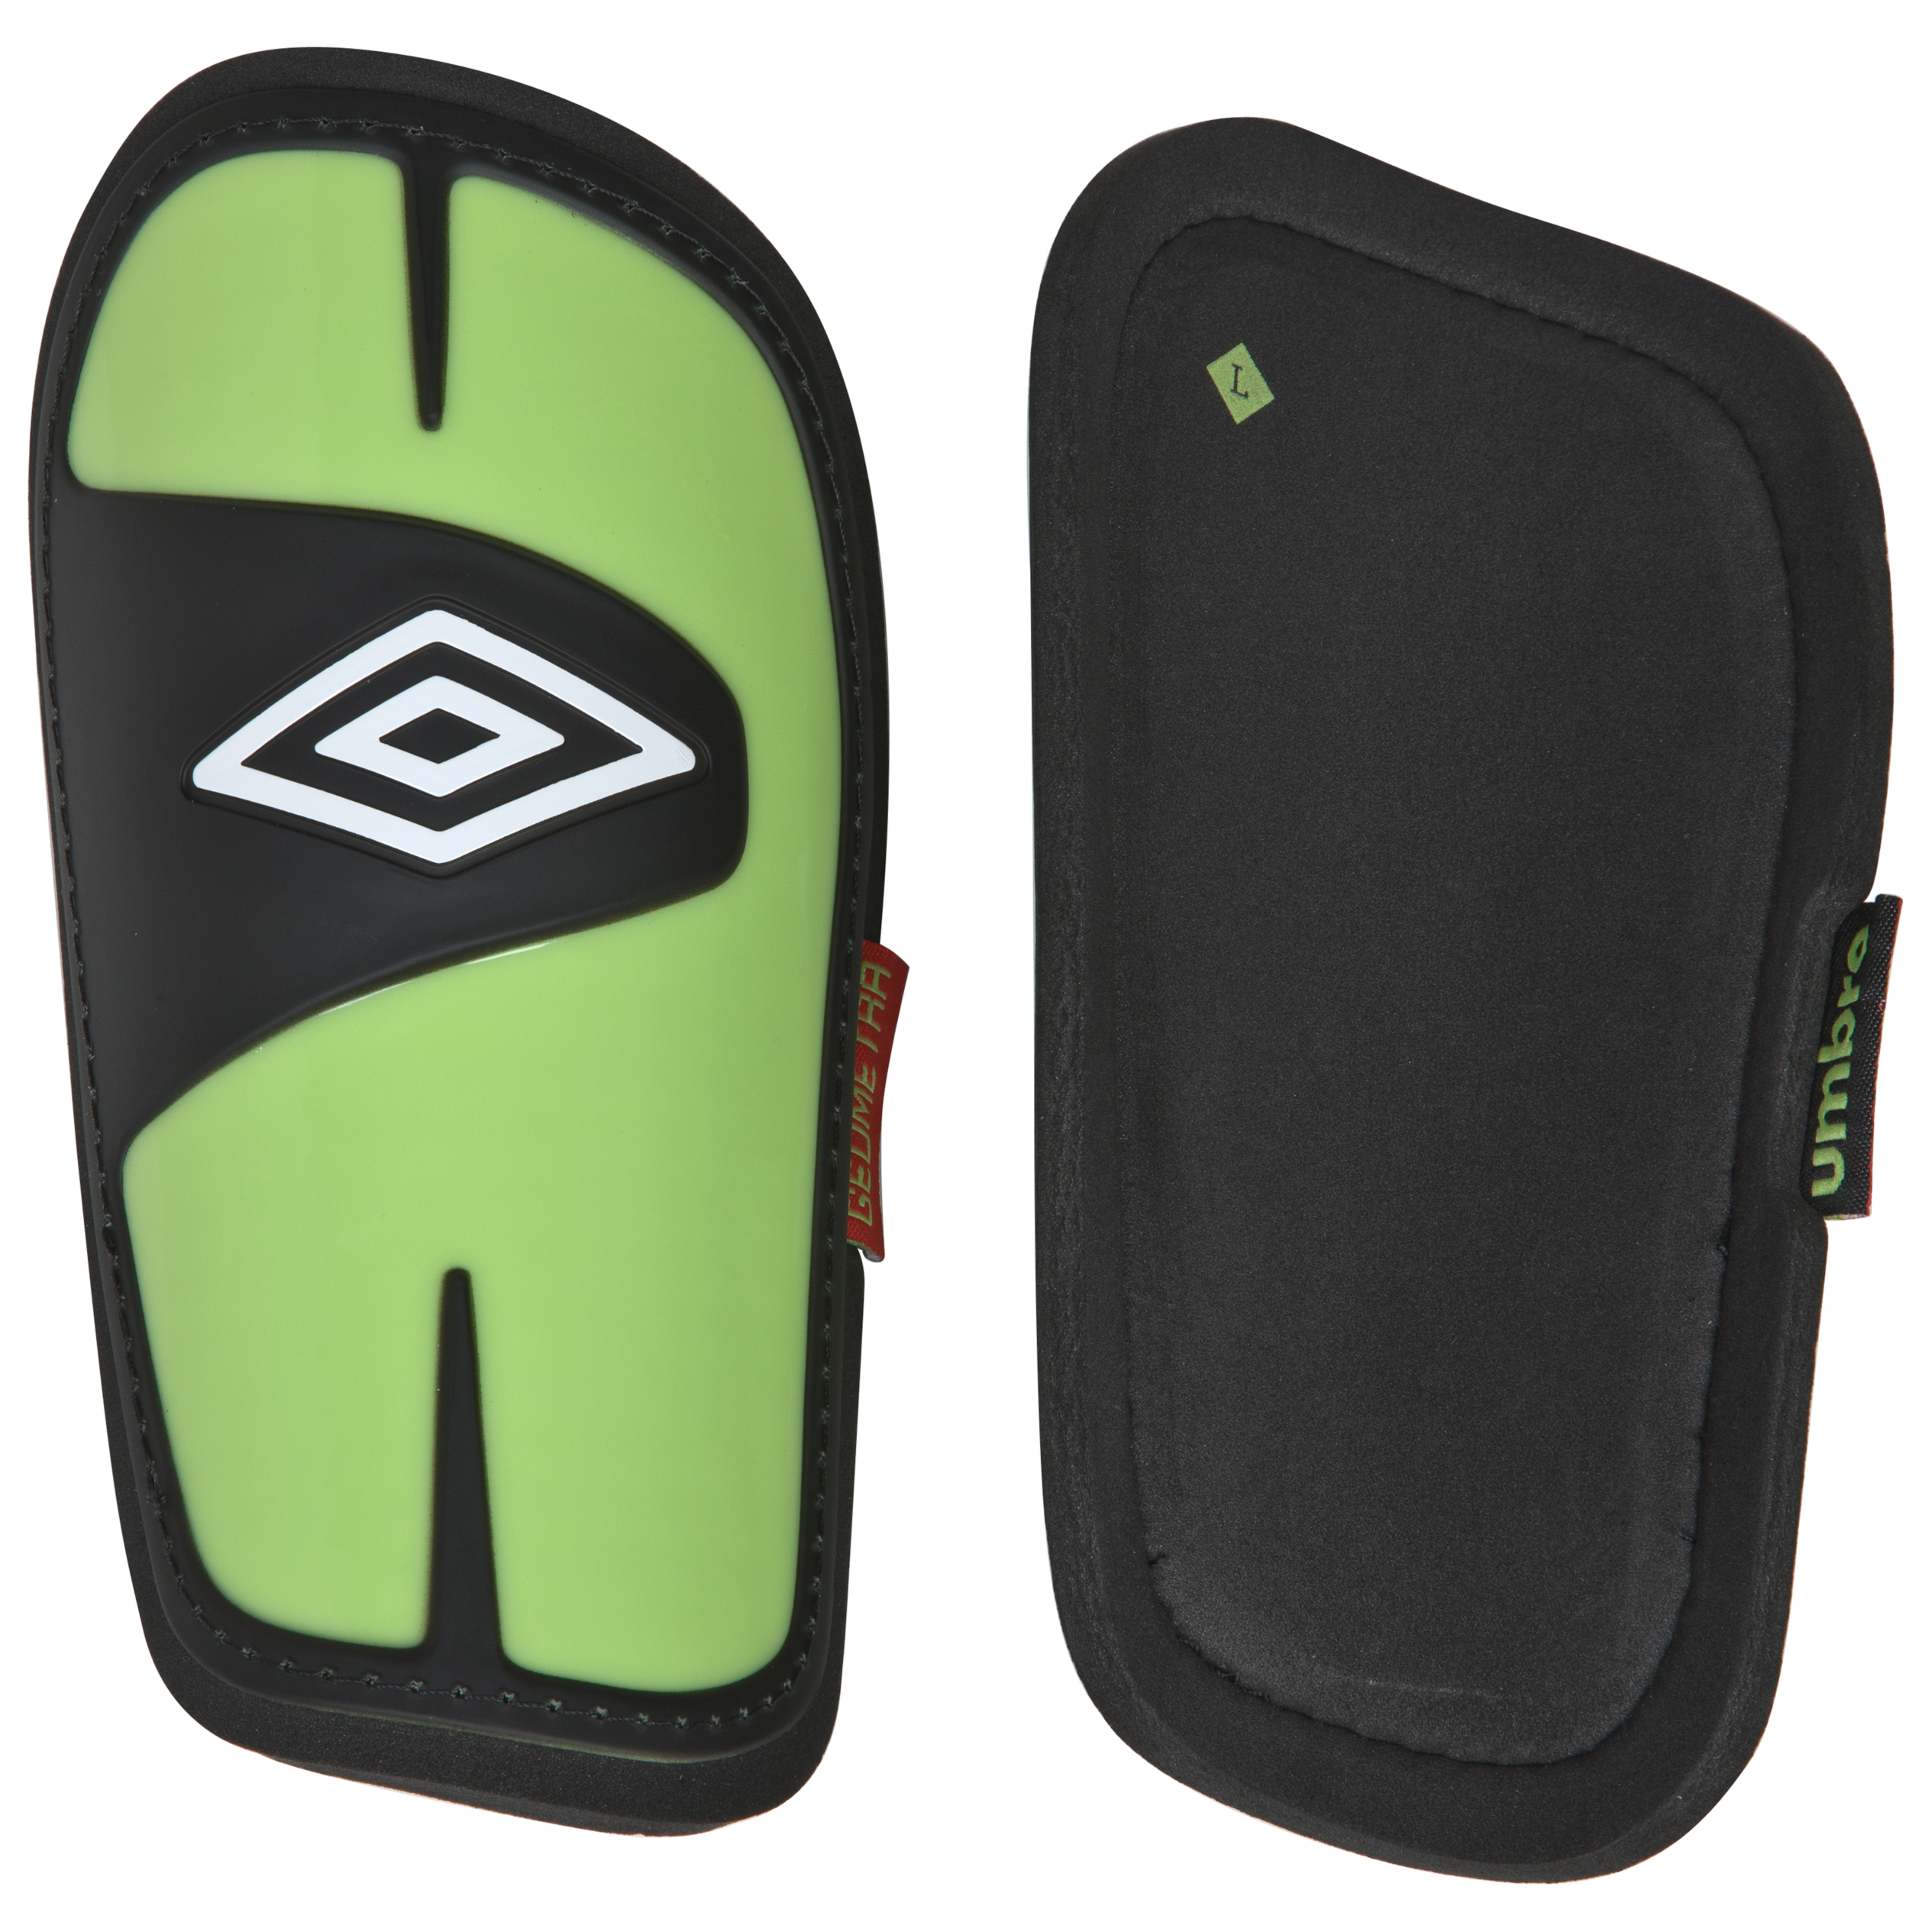 Umbro Geometra Pro Shield Shinpads - Black/White/Sharp Green/True Red